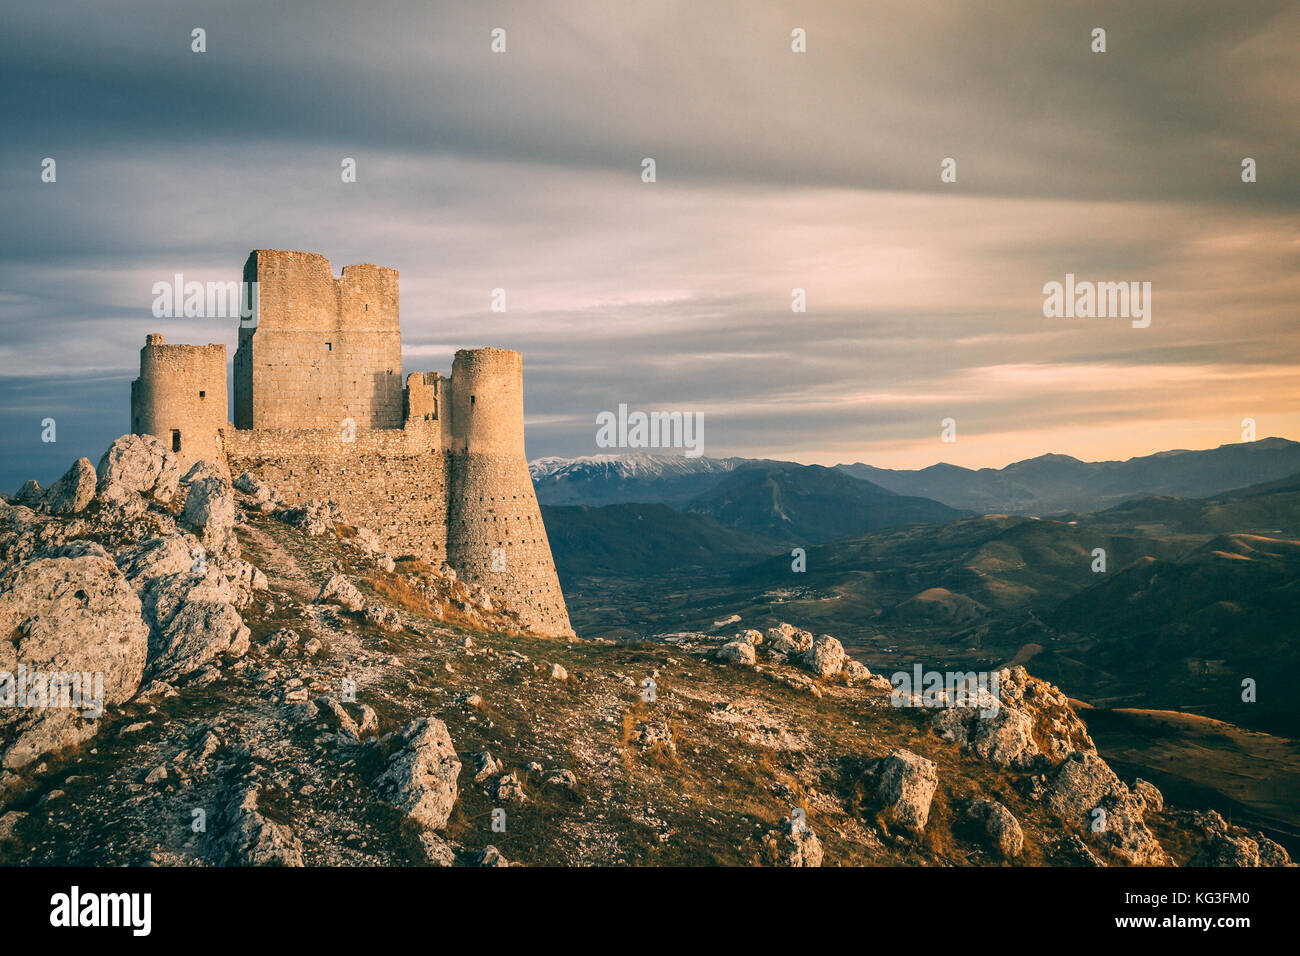 The rolling hills of the Apennines mountain range as seen from Rocca Calascio, featuring Santa Maria della Pietà. - Stock Image